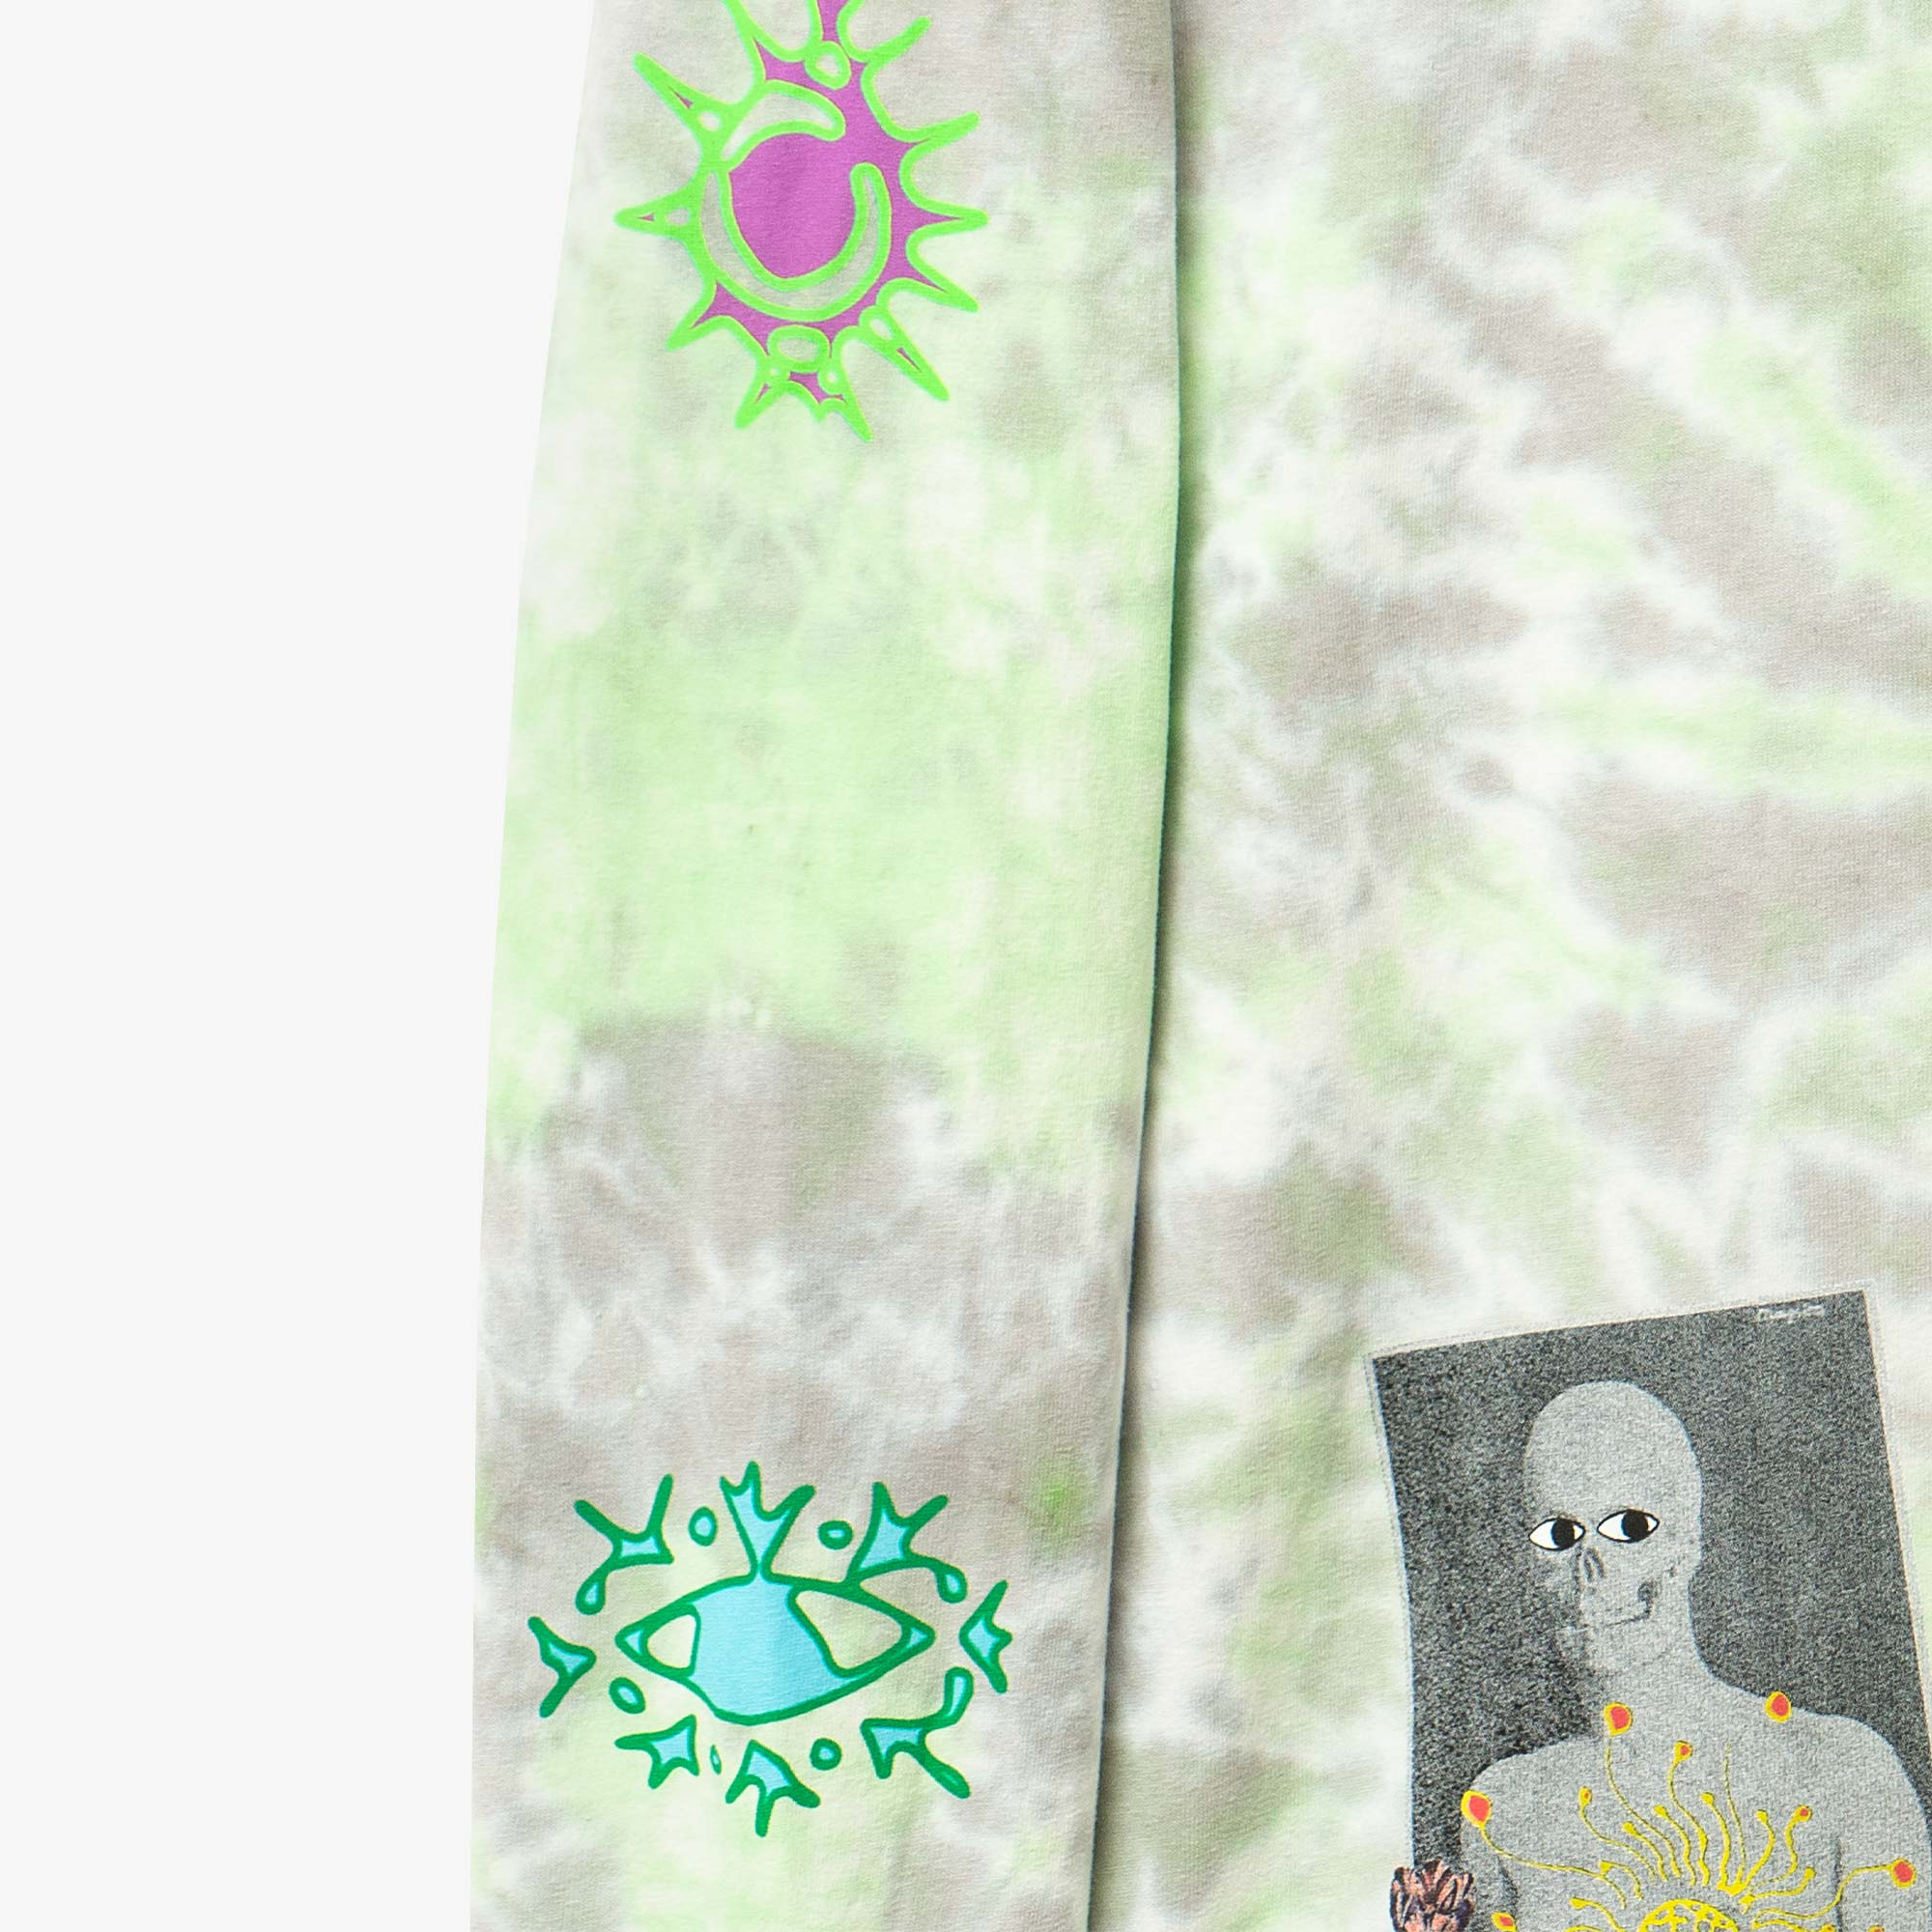 Real Bad Man From Outer Space LS Tee - Blue / Green 4